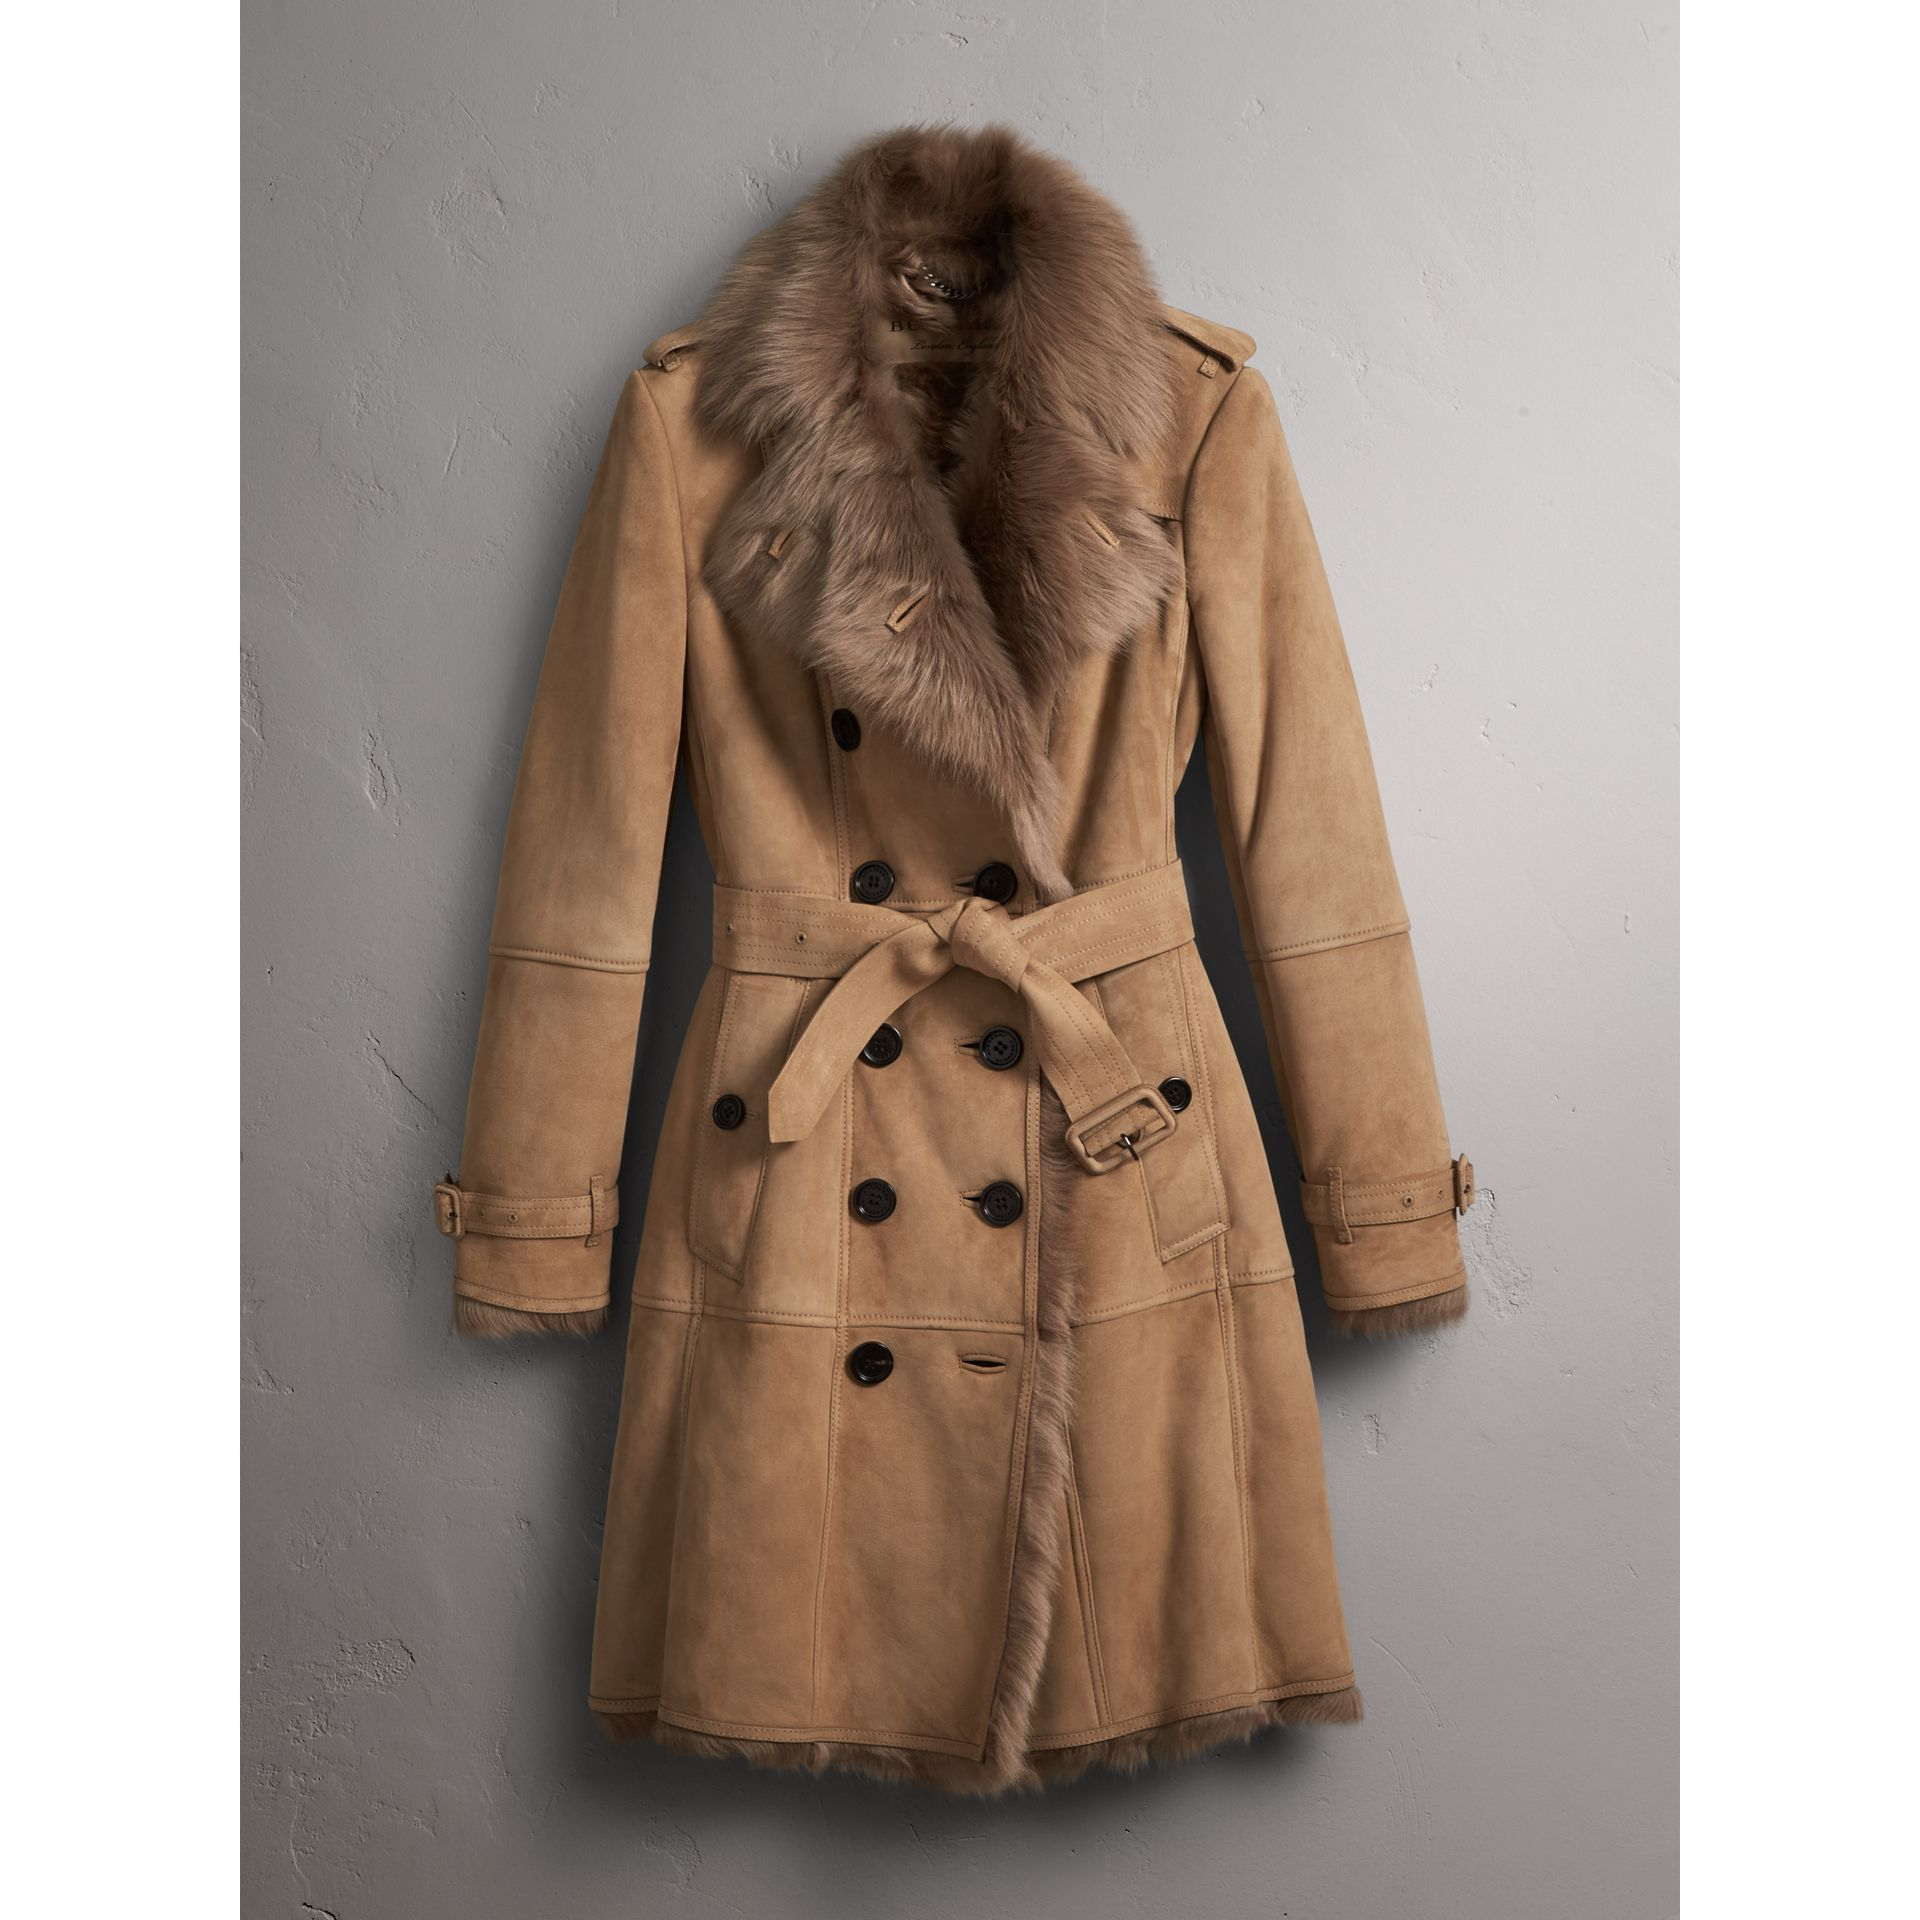 Shearling Trench Coat in Camel - Women | Burberry Australia - gallery image 4